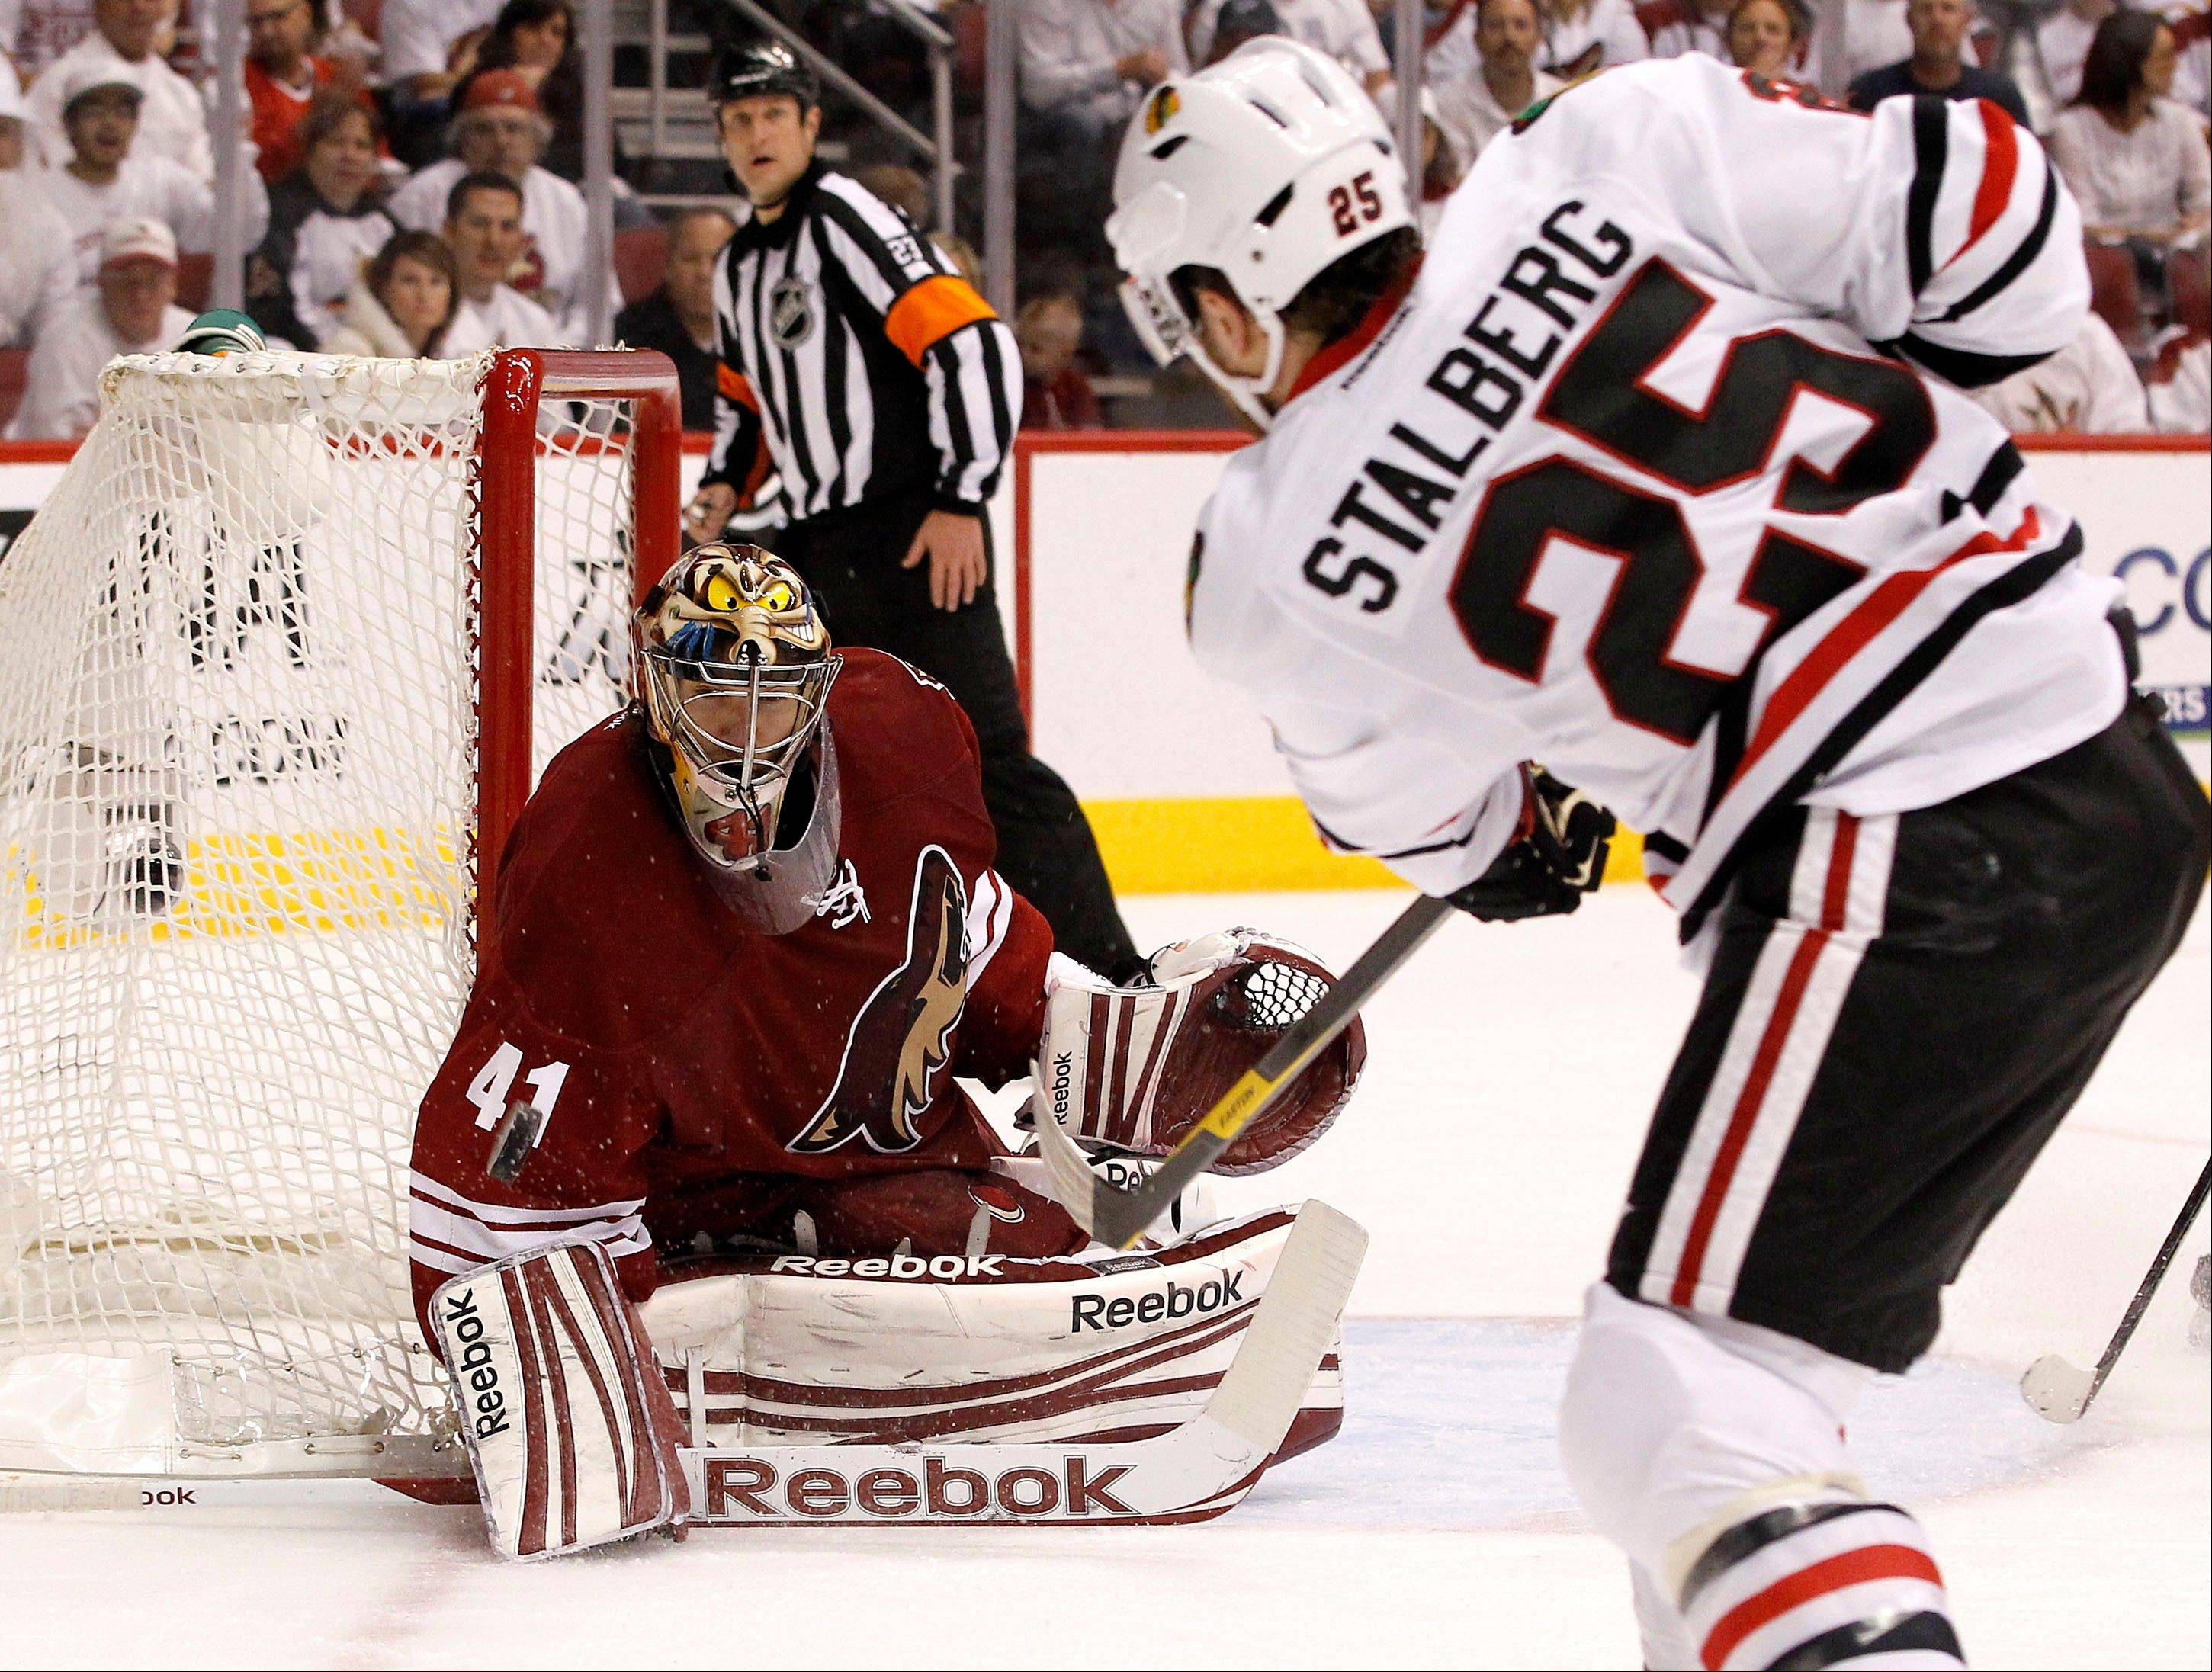 Chicago Blackhawks' Viktor Stalberg (25), of Sweden, sends a shot at Phoenix Coyotes' Mike Smith (41), who makes the save, during the second period in Game 5 of an NHL hockey Stanley Cup first-round playoff series Saturday, April 21, 2012, in Glendale, Ariz.